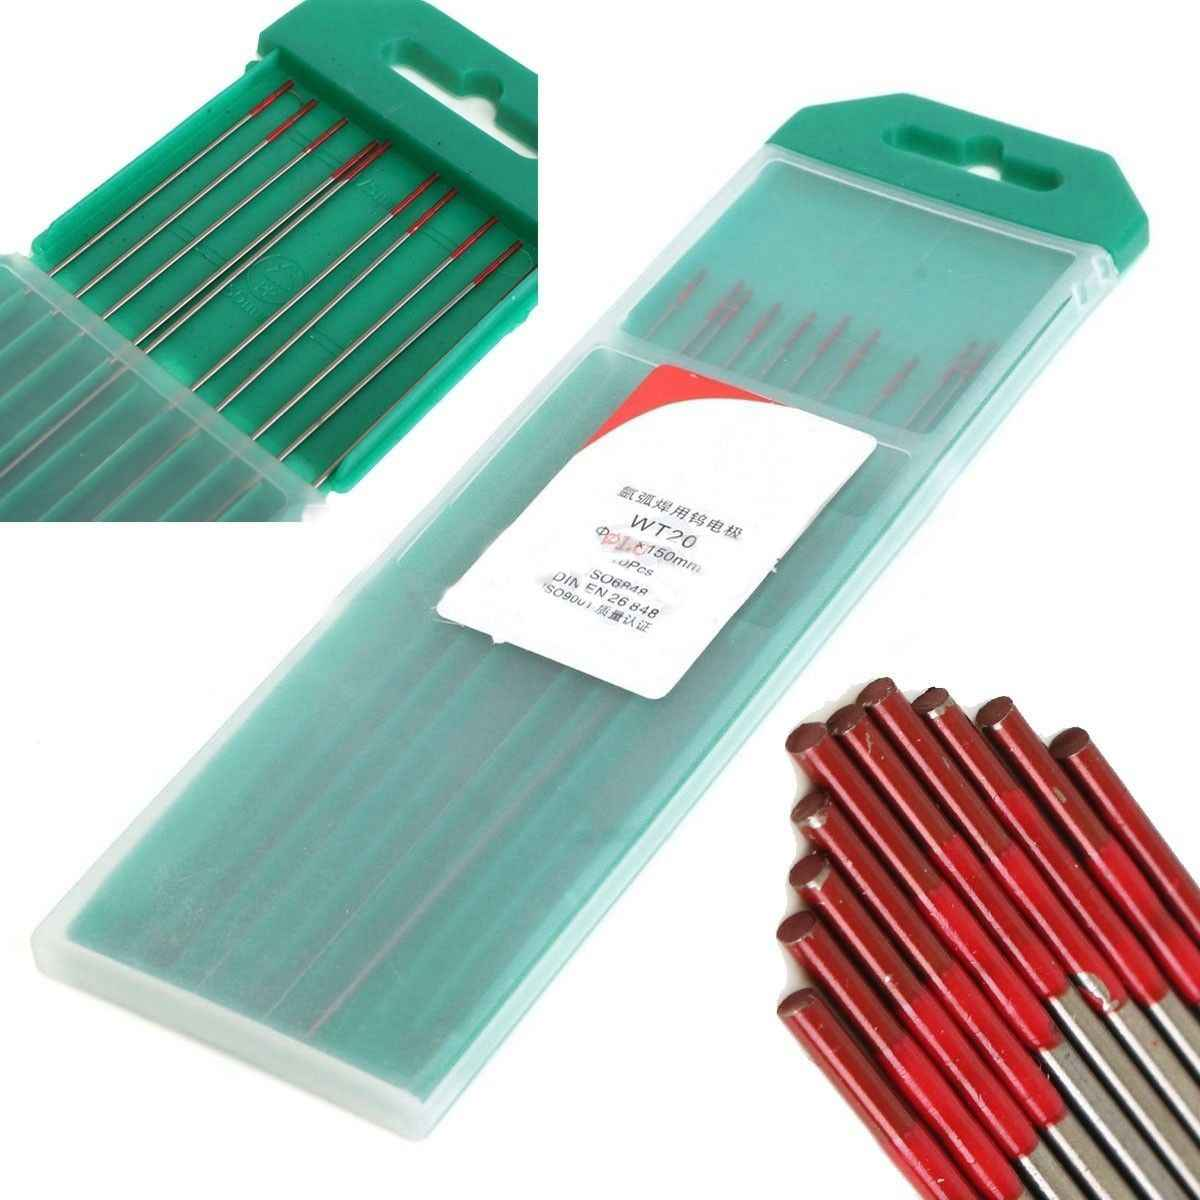 Red Tip 10 Pack 1.0mm Thoriated 2/% TIG Welding Tungsten/'s Electrode 175mm